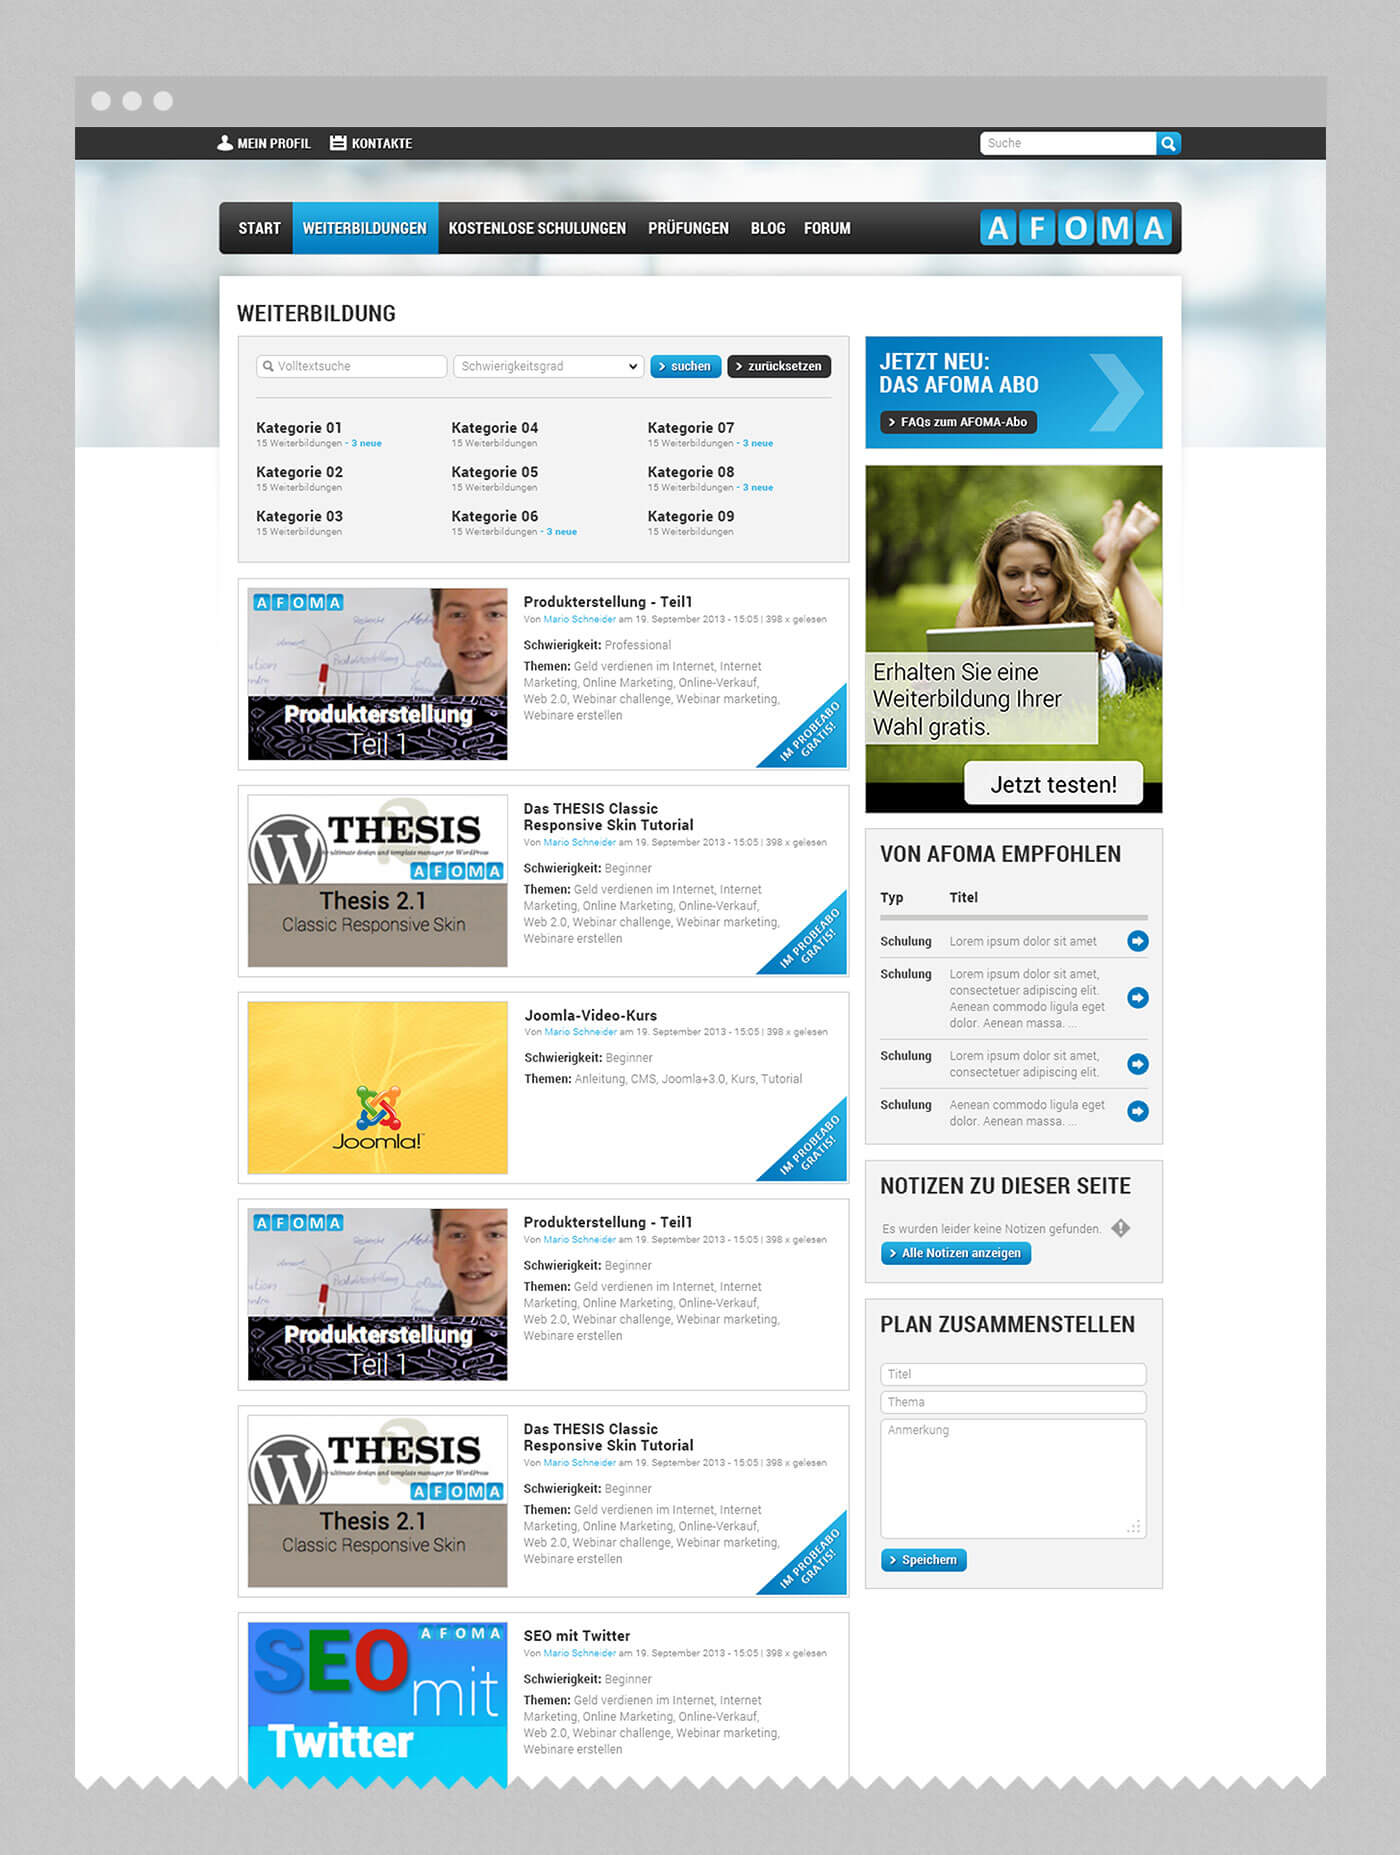 webdesign stuttgart - dt media group - afoma